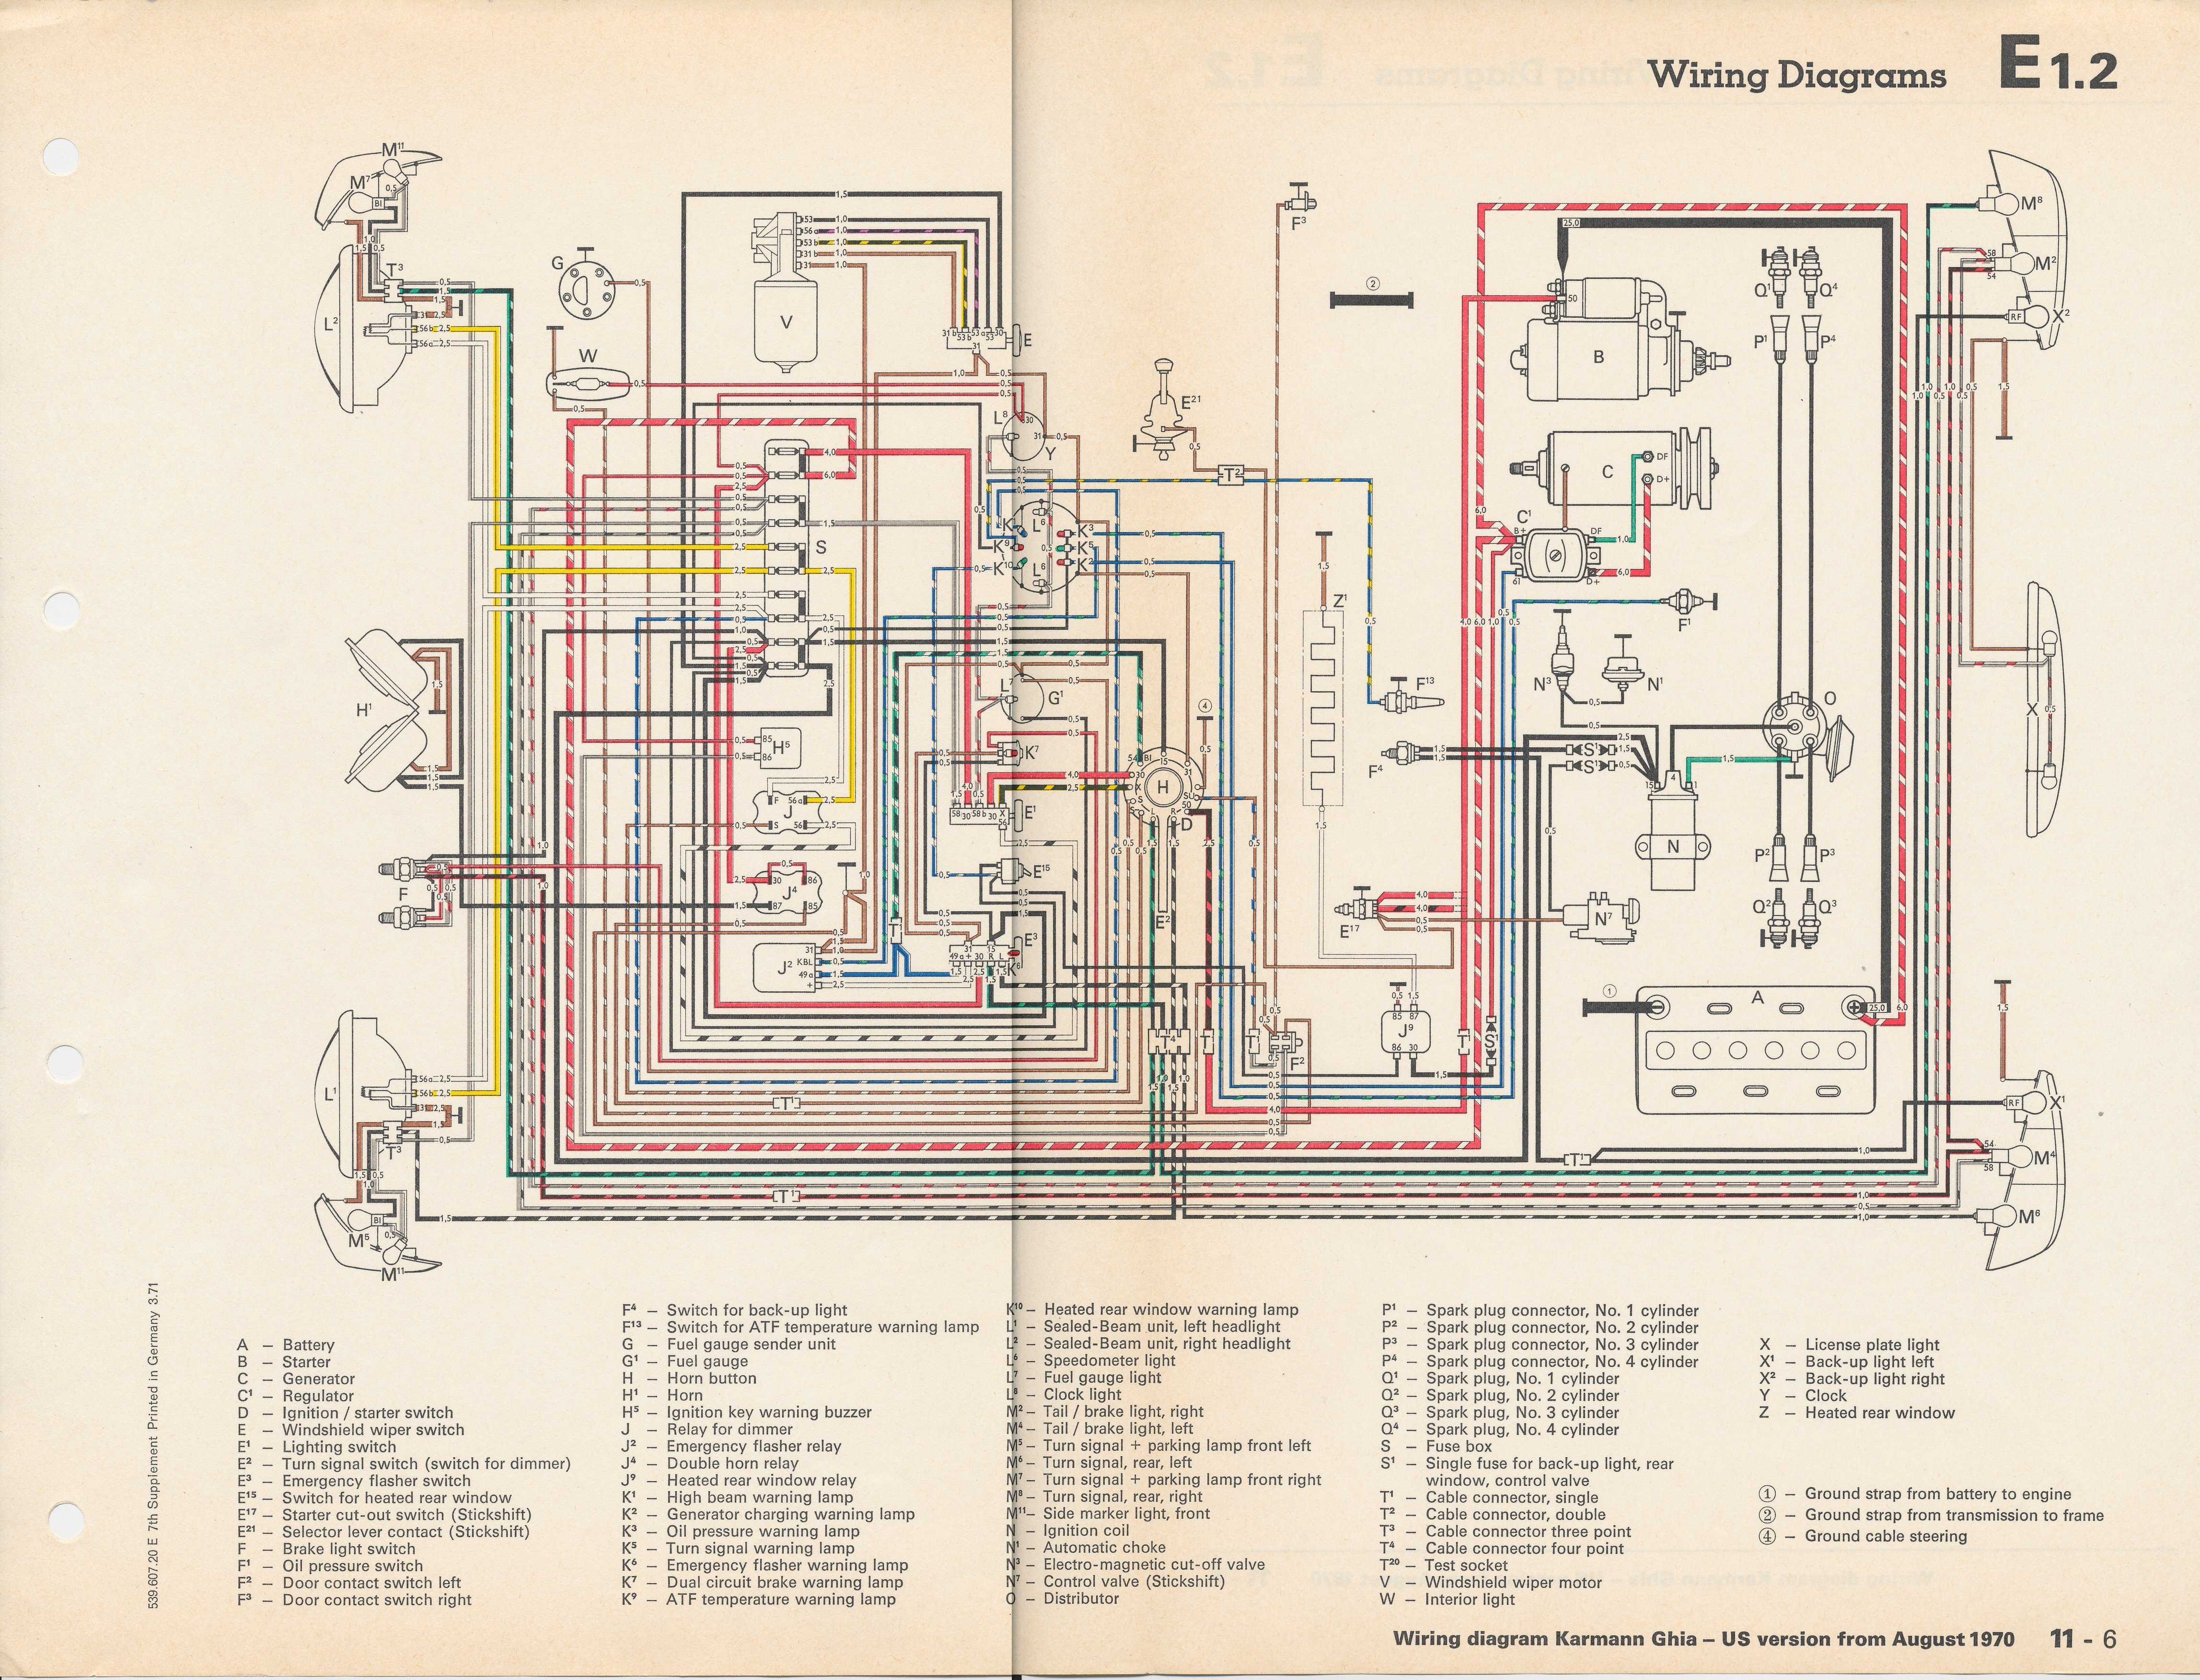 1970 vw beetle ignition switch wiring diagram and there labeled microscope parts for what 1971 karmann ghia get free image about